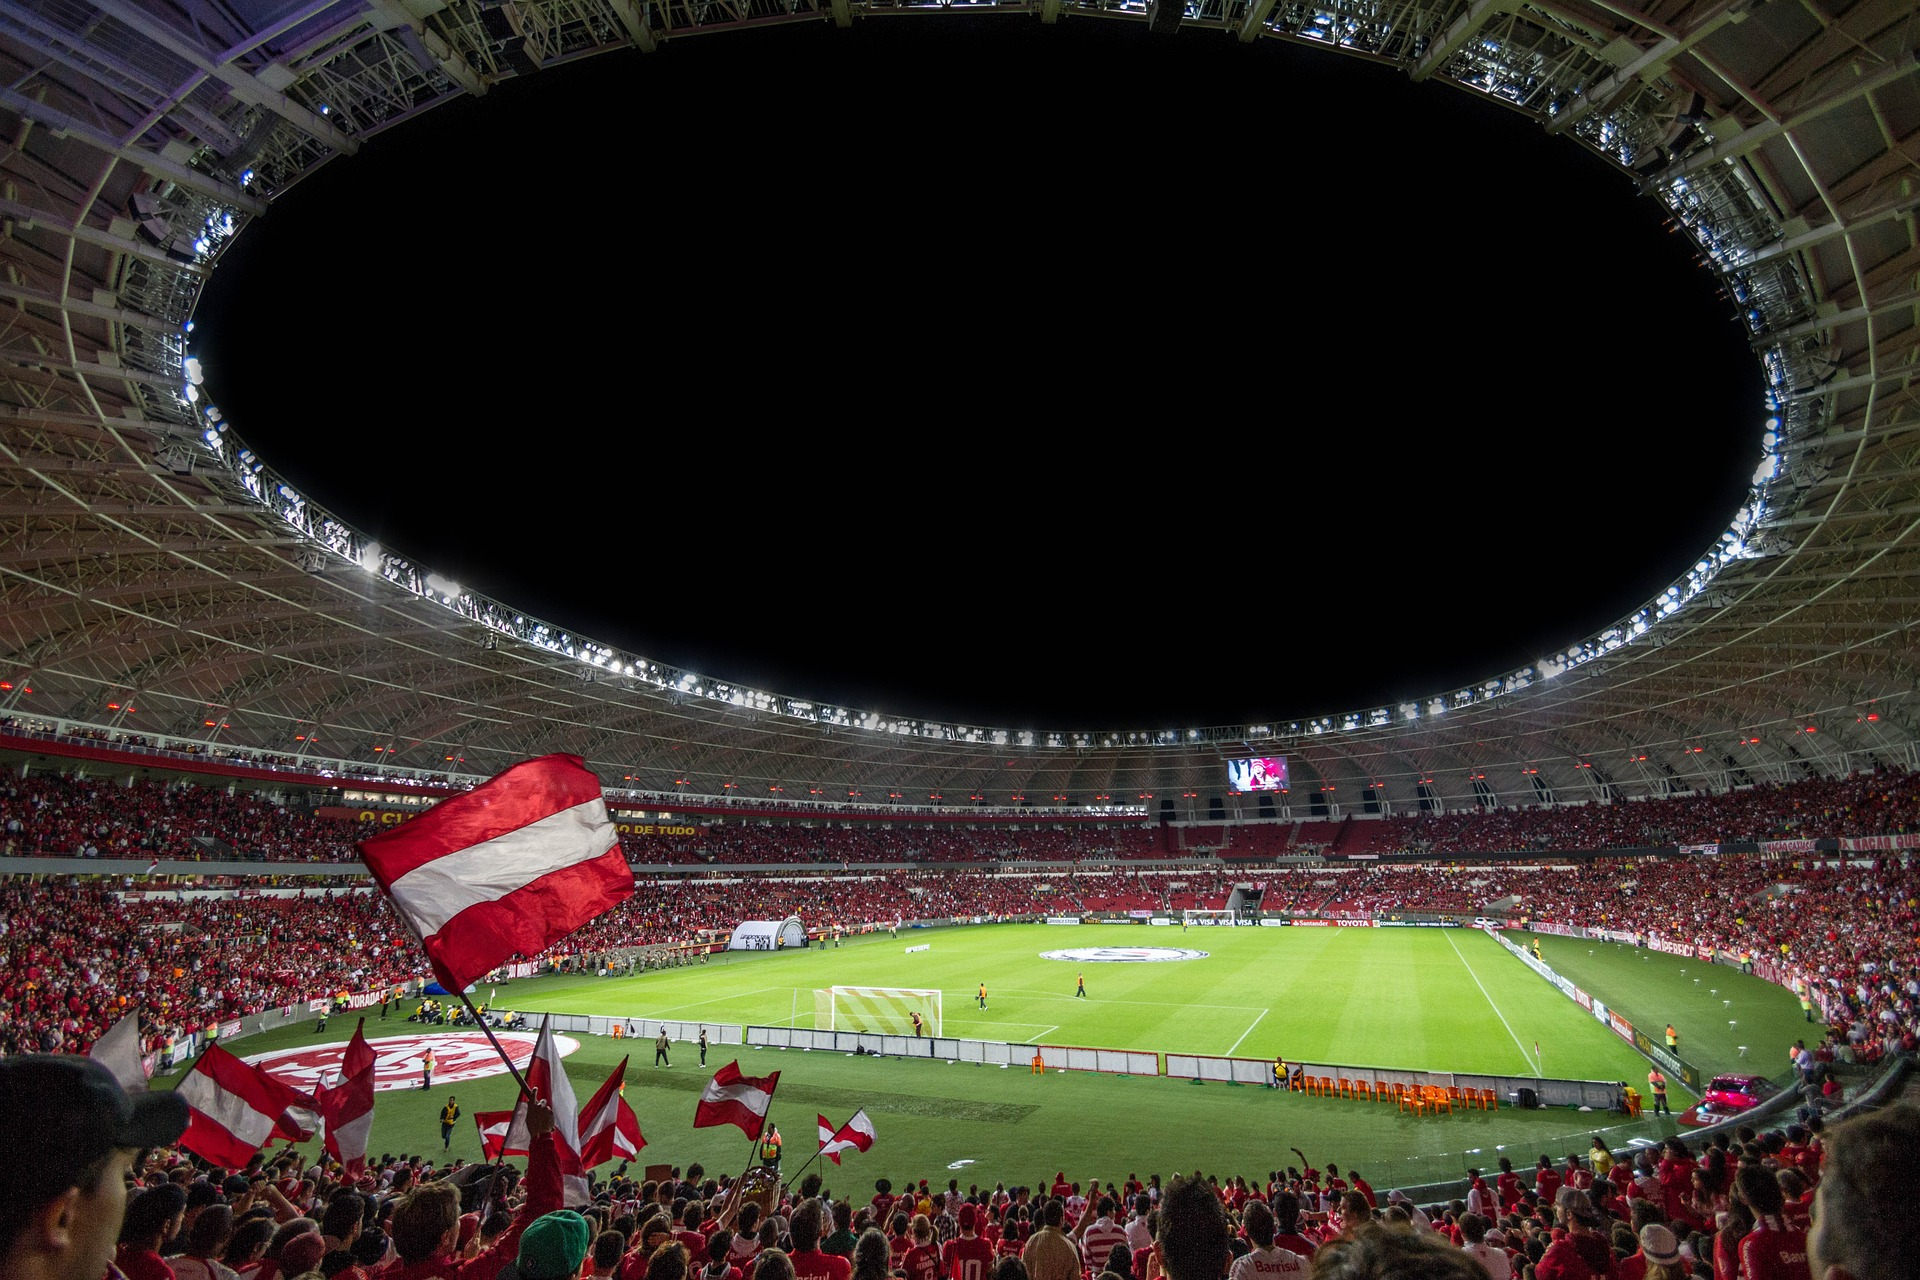 https://pixabay.com/en/people-crowd-sport-stadium-flag-1284253/